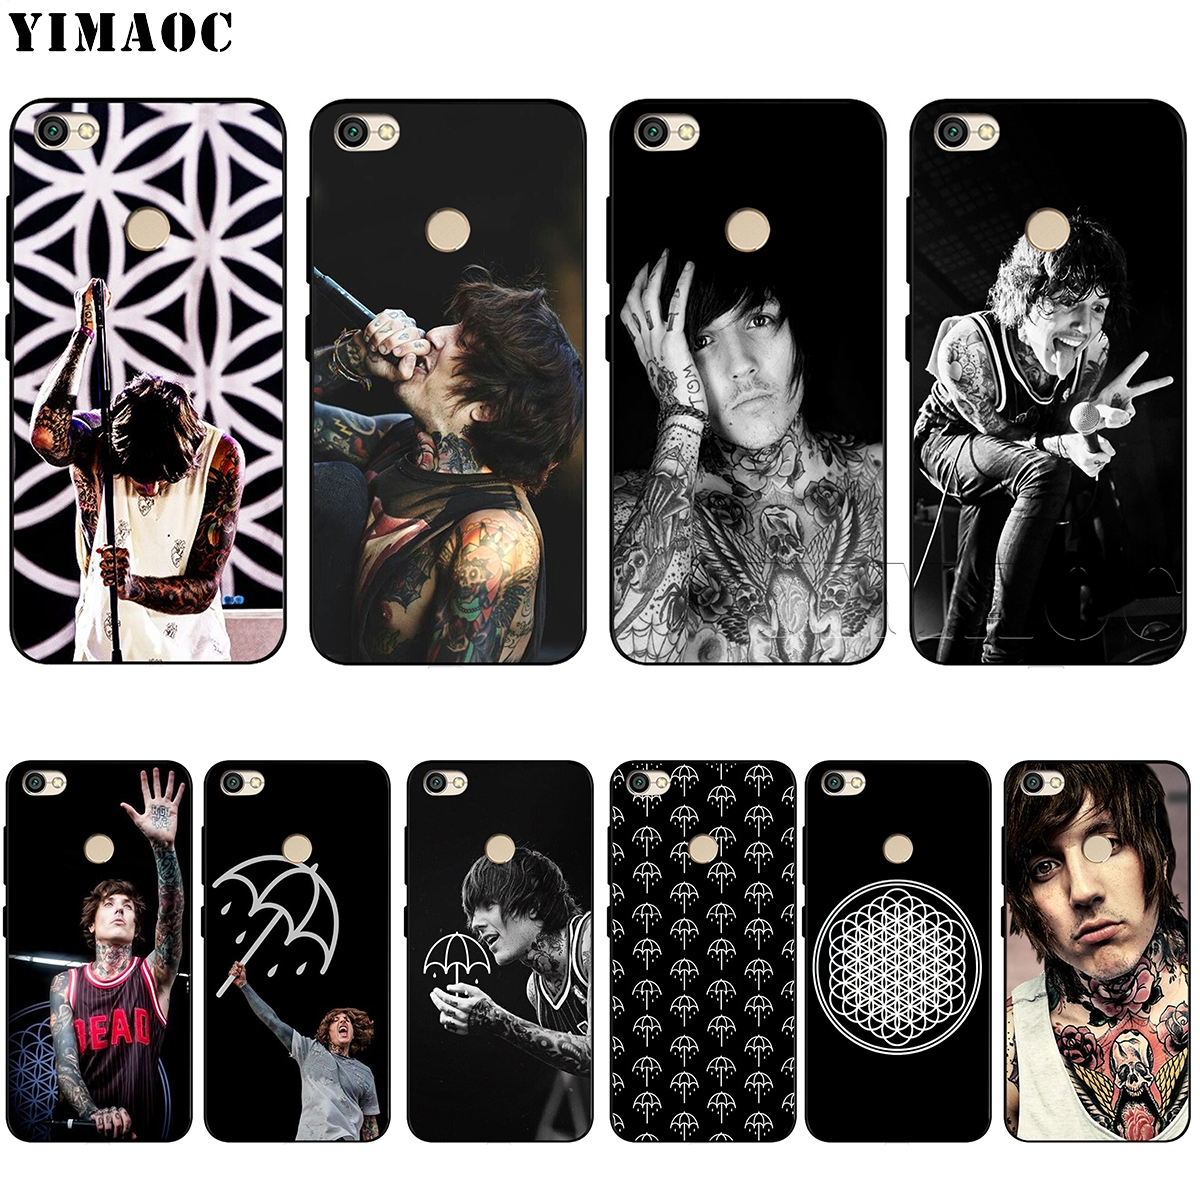 YIMAOC Oliver Sykes BMTH Silicone Case for Xiaomi Redmi Note 4 4X 4A 5 5A 6 6A MI A1 A2 mi6 mi 8 Pro Lite Prime Plus f1